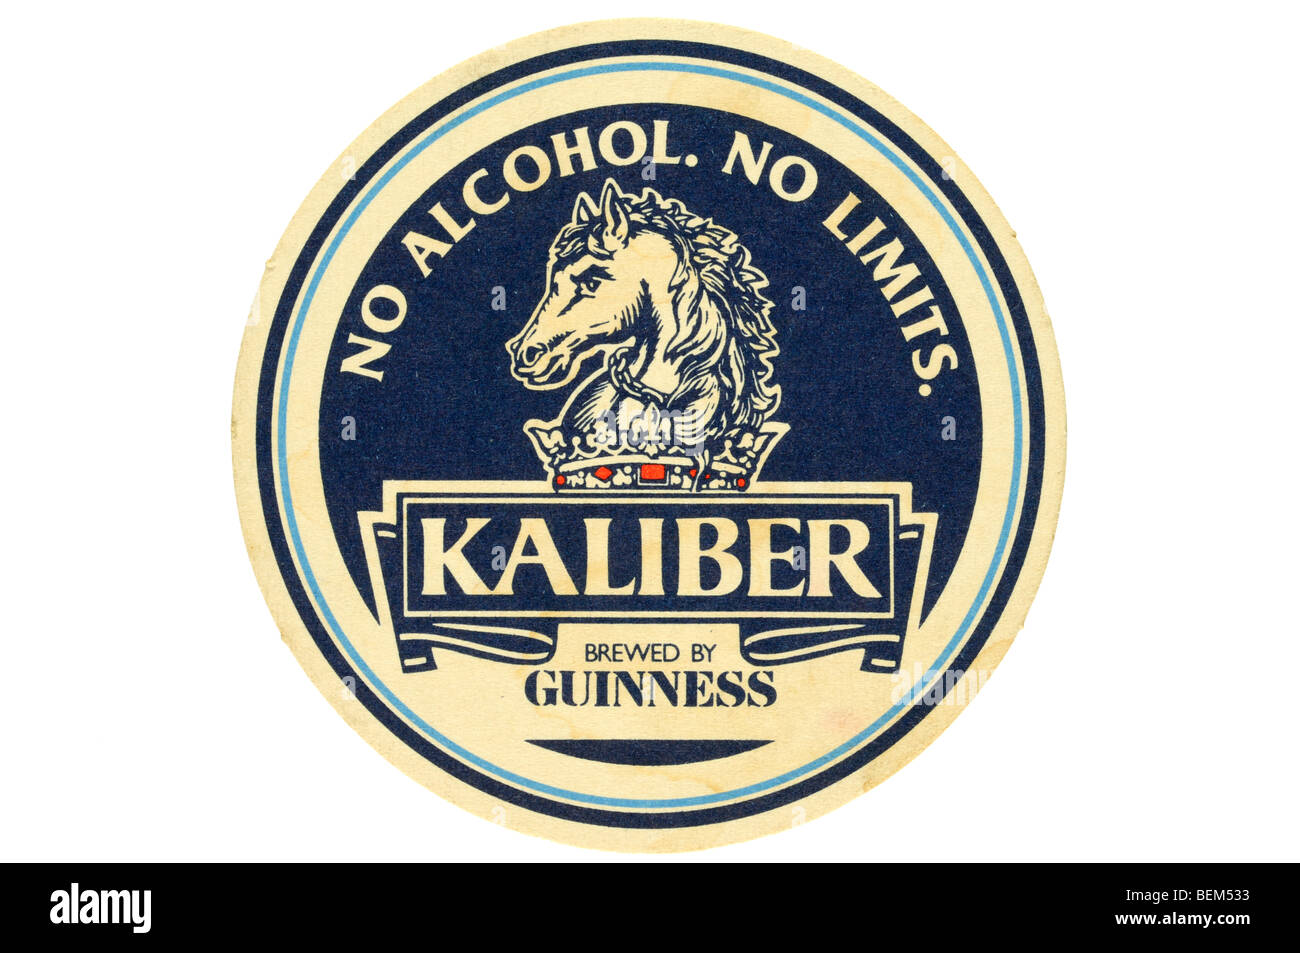 no alcohol no limits kaliber brewed by guinness - Stock Image